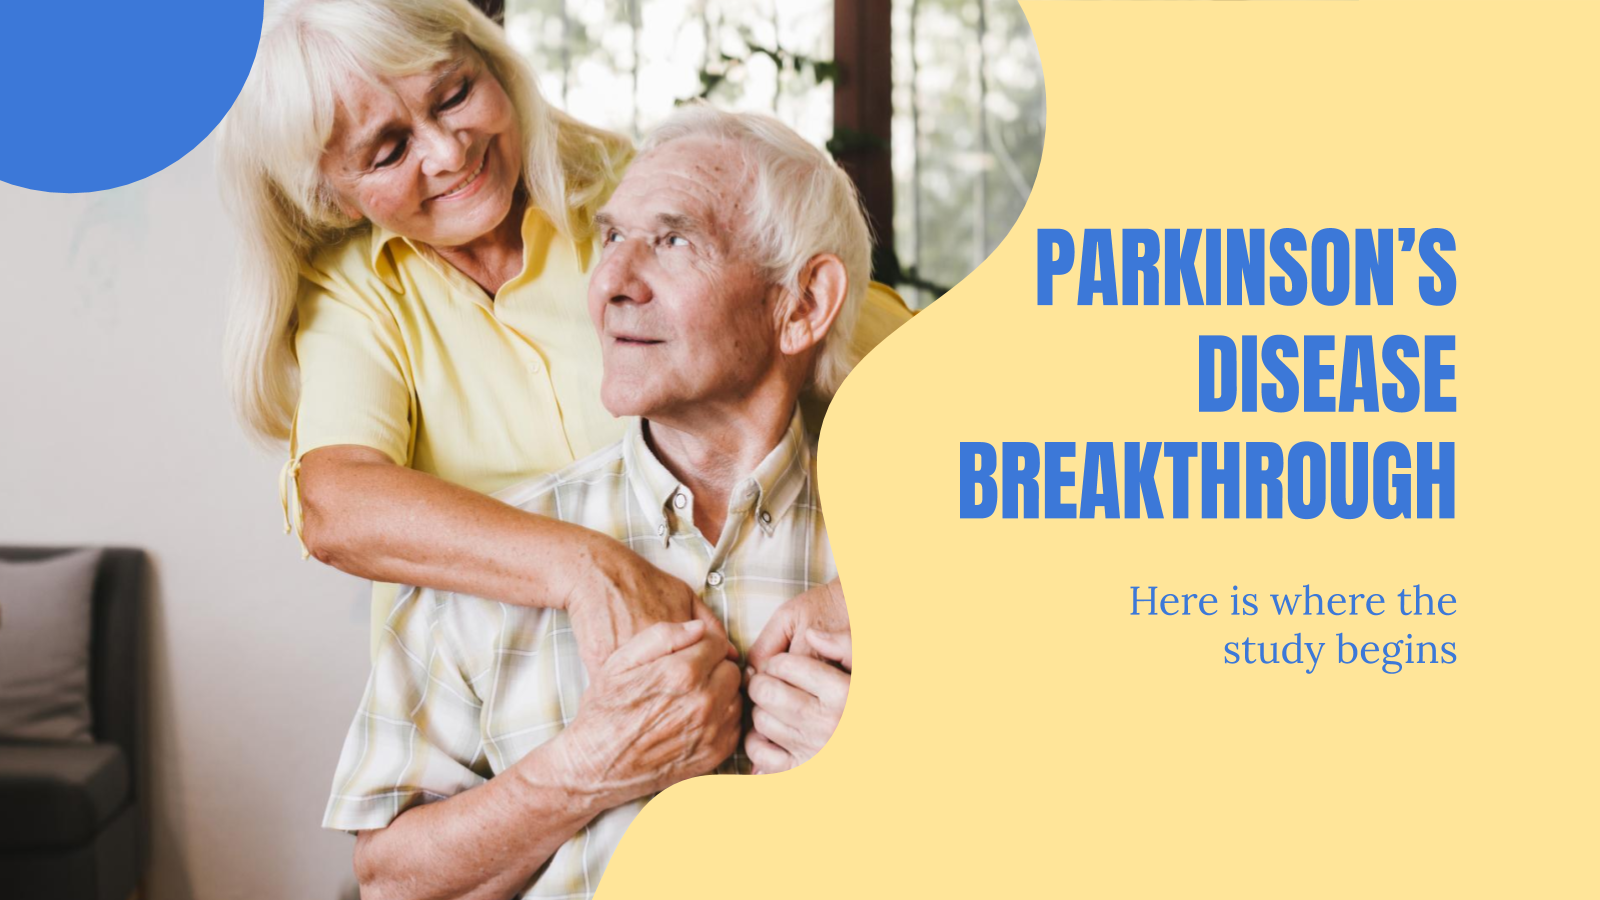 Parkinson's Disease Breakthrough presentation template